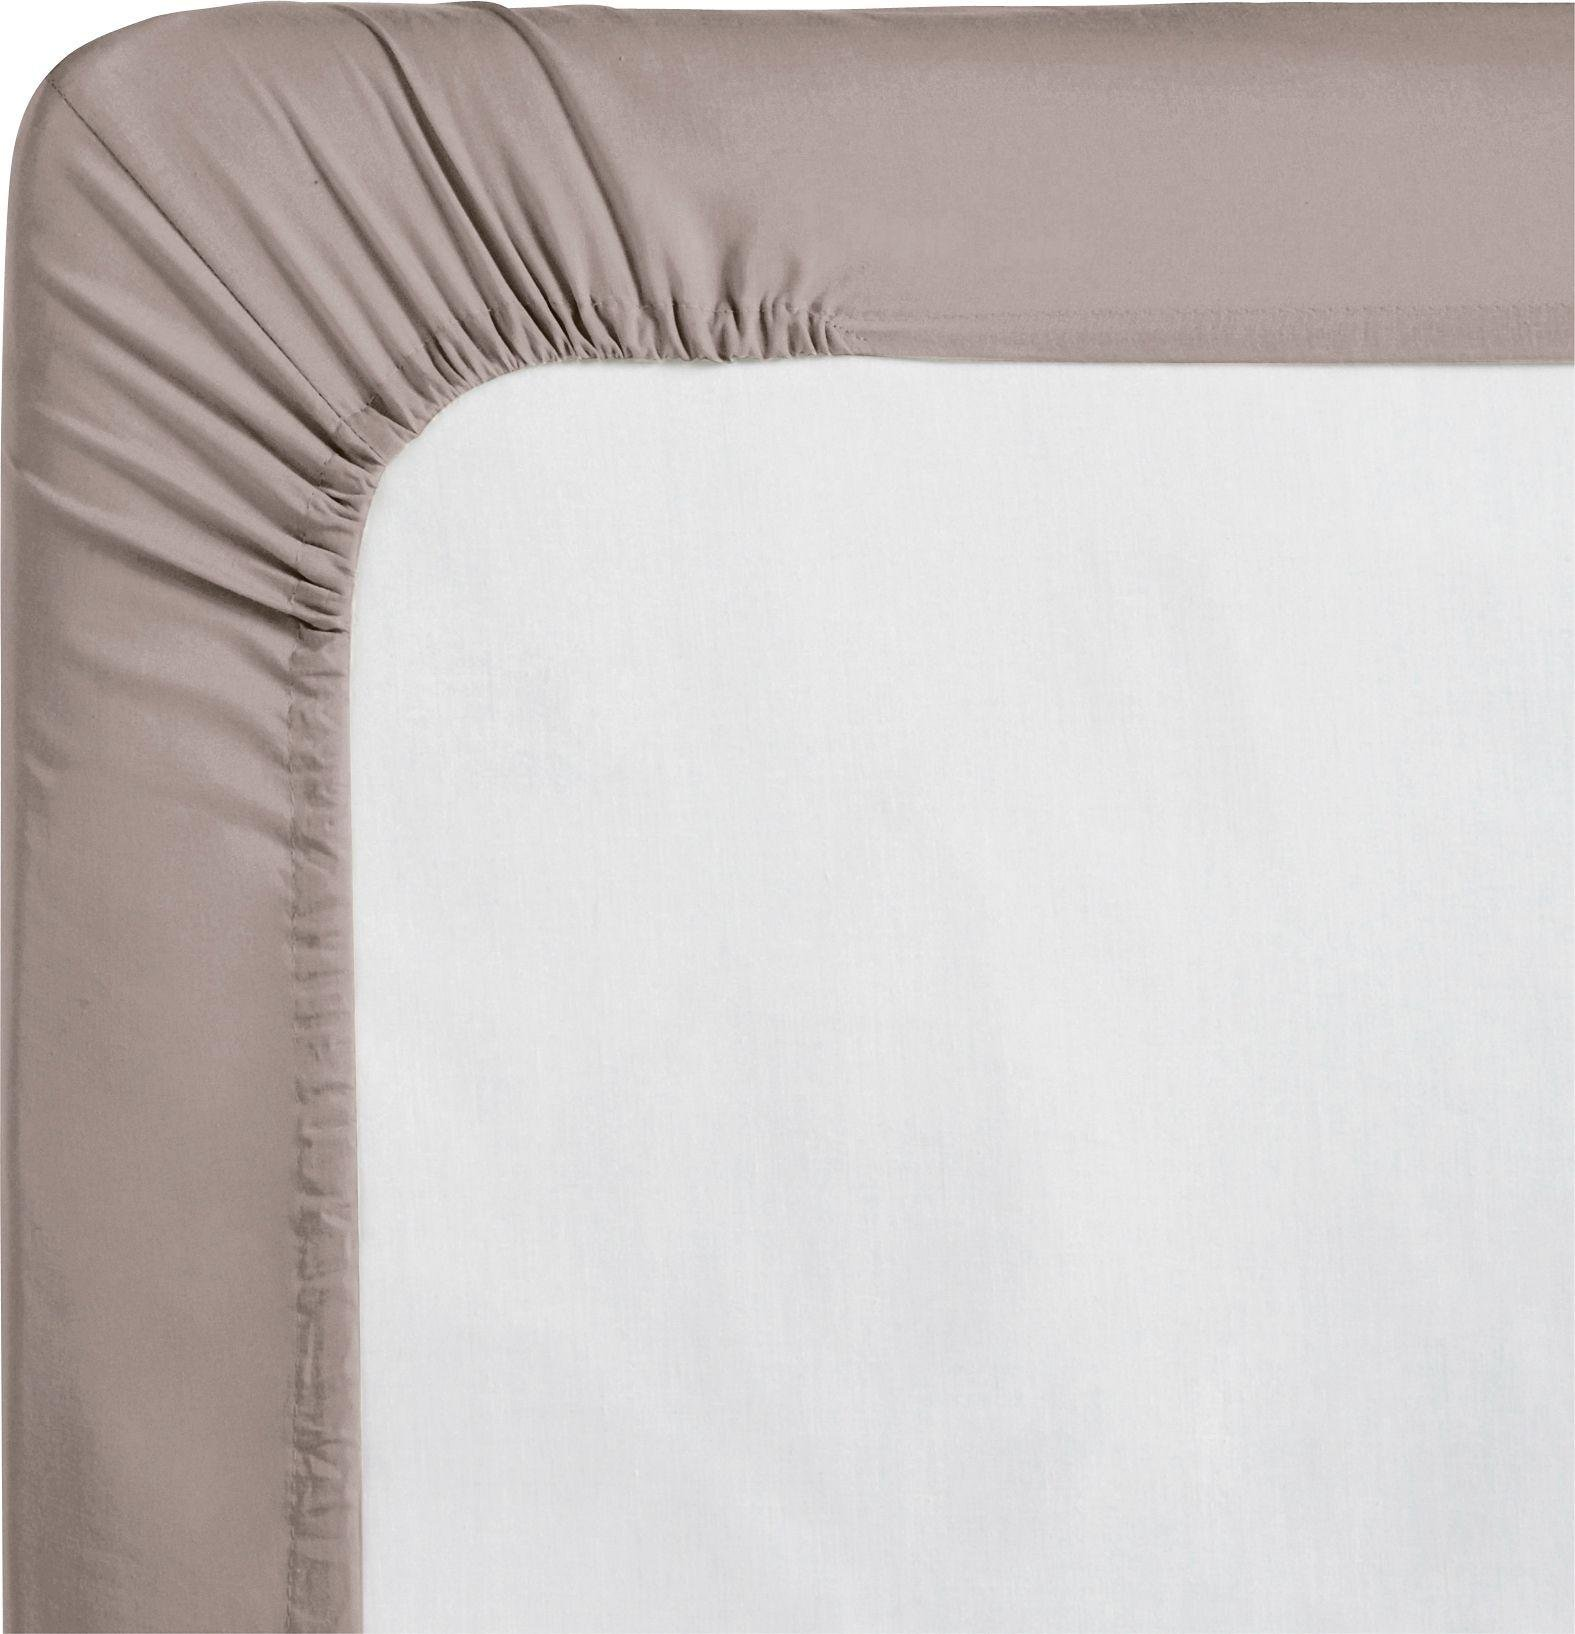 colourmatch  cafe mocha fitted  sheet  double